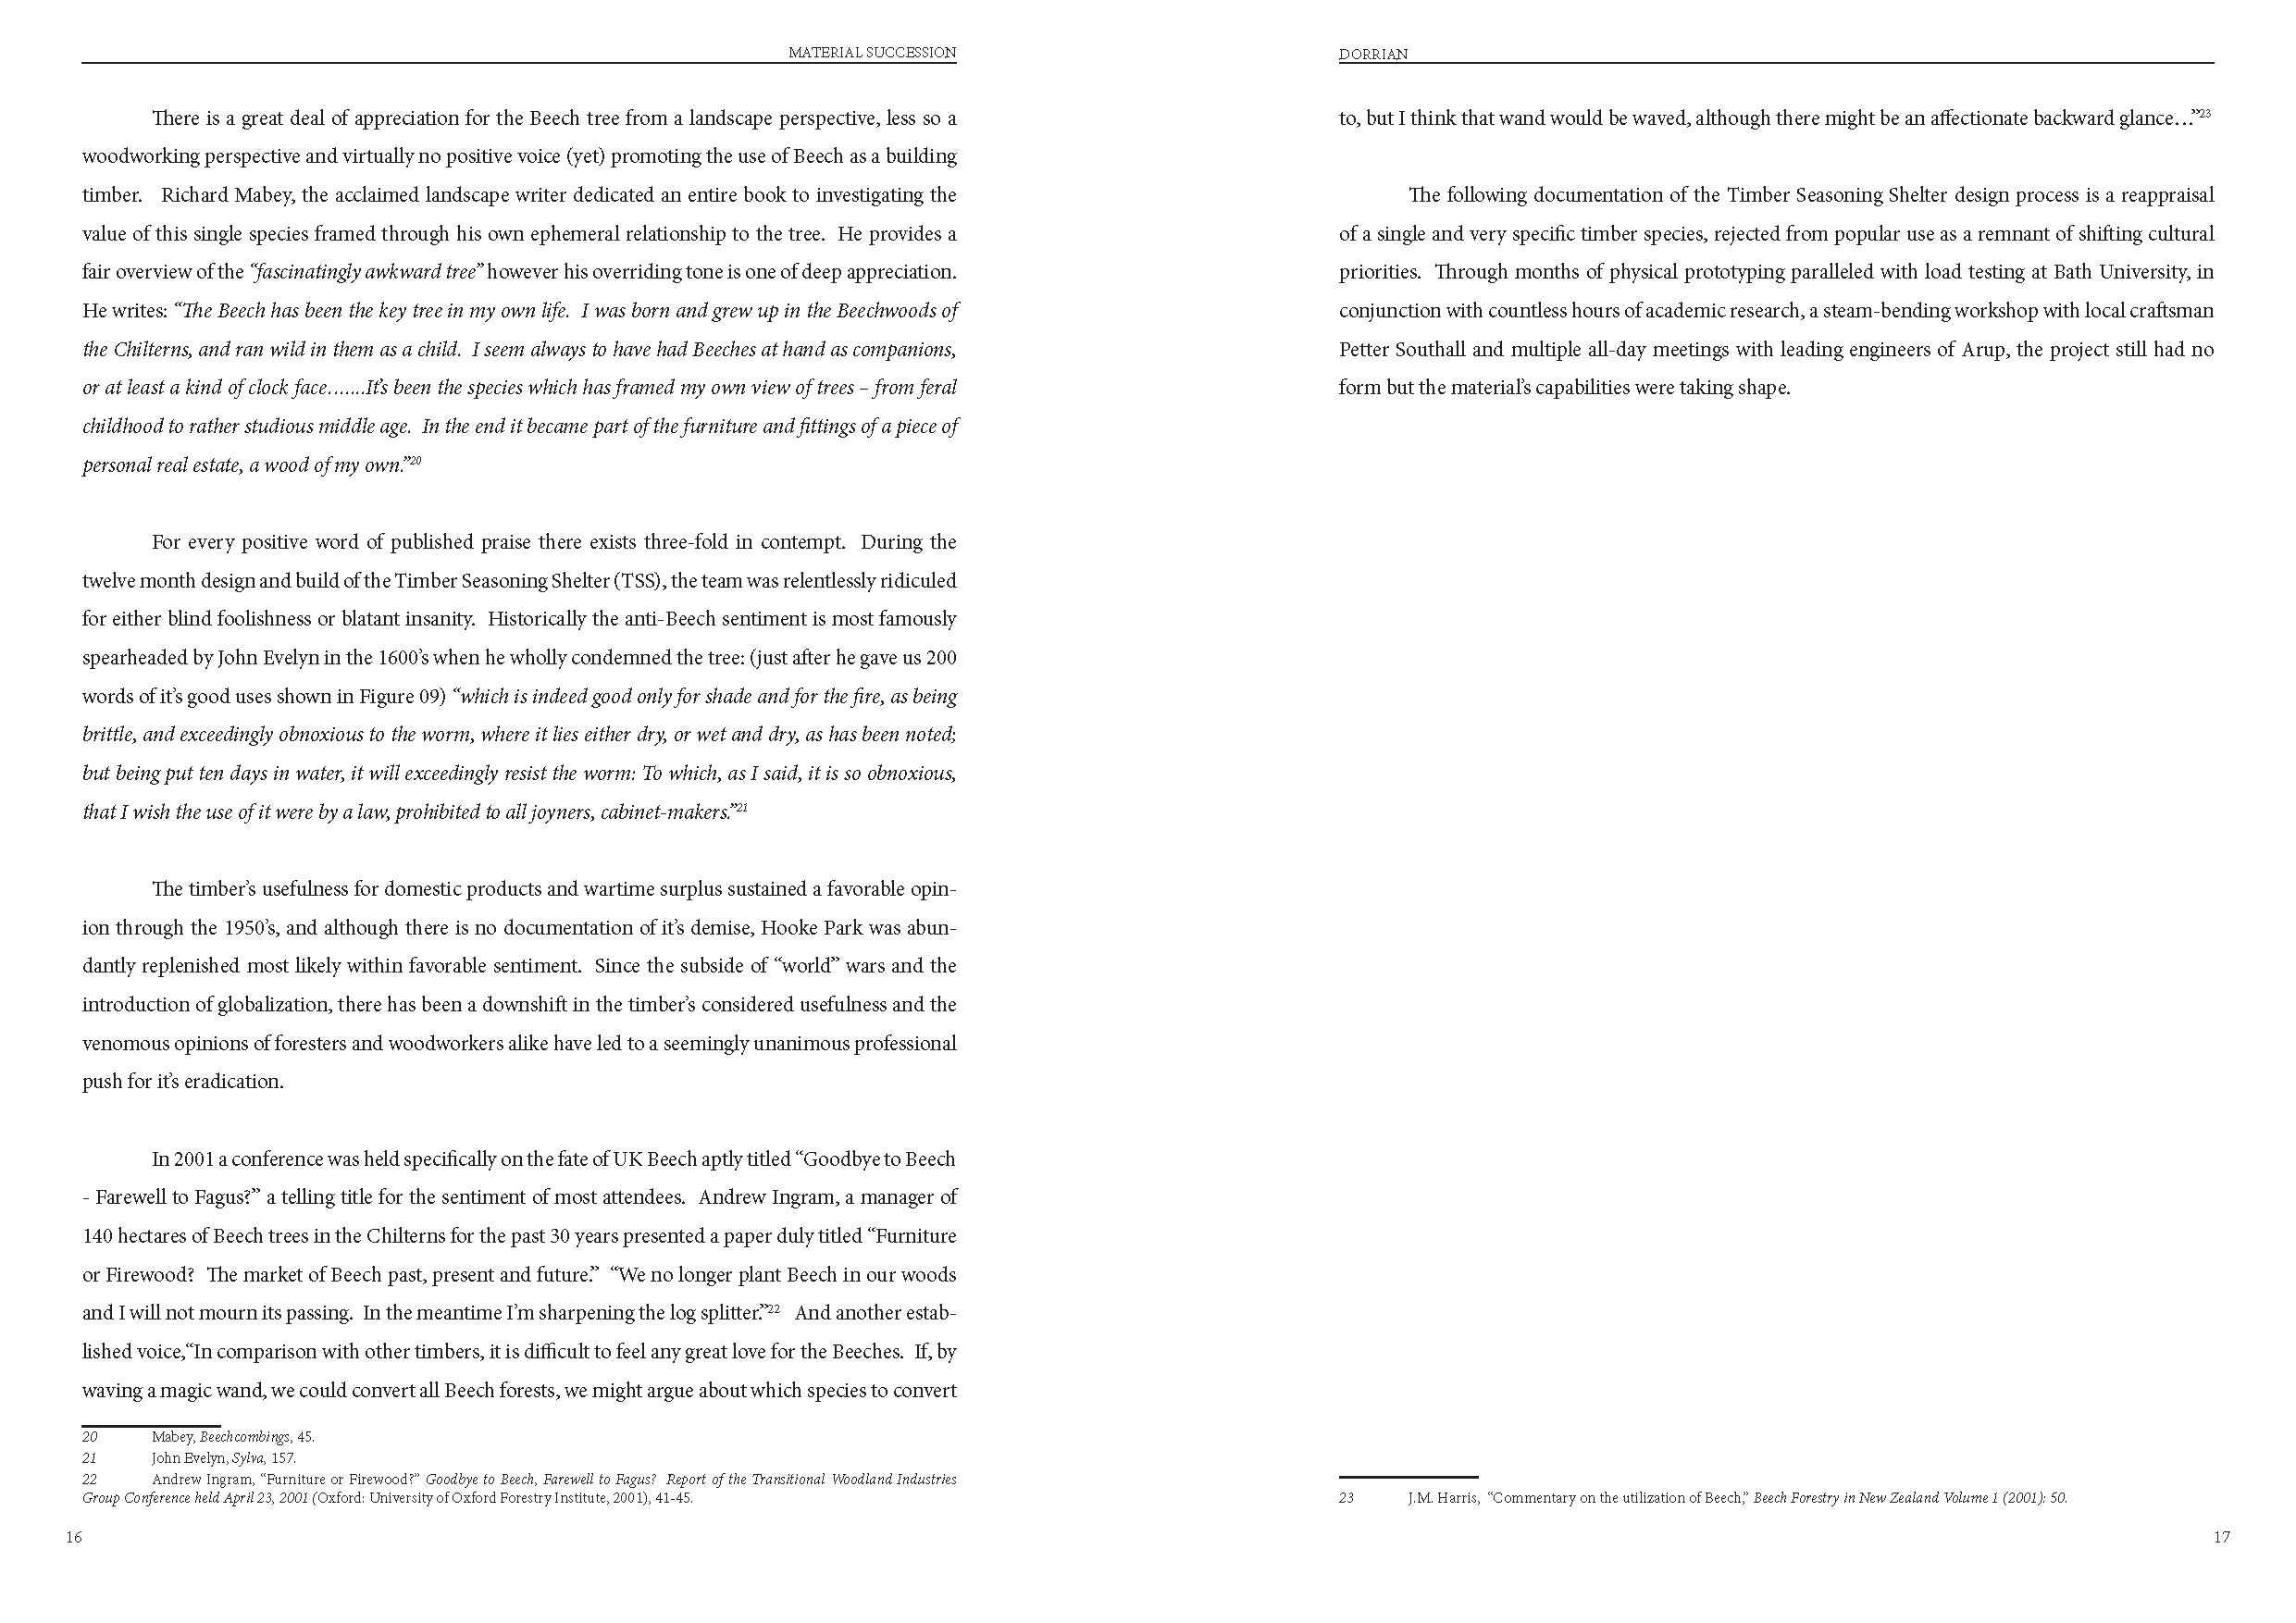 130131_Material SuccessionFORSUBMITTAL_Page_13.jpg